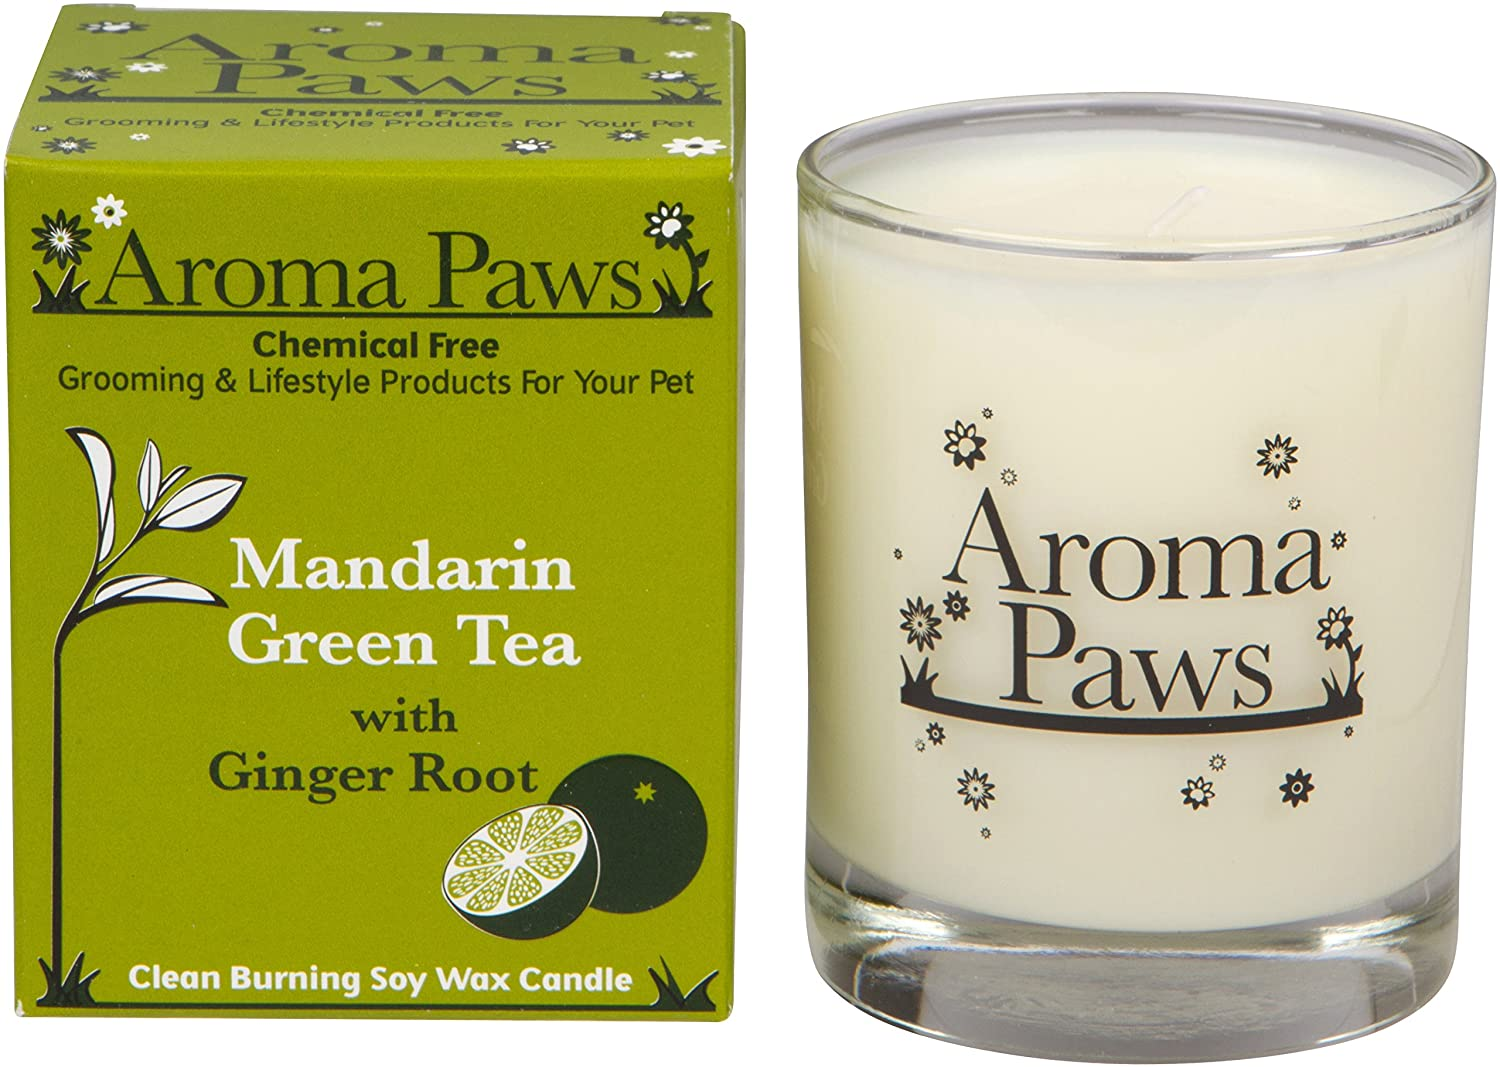 Aroma Paws Candle in Glass with Gift Box, 8-Ounce, Mandarin Green Tea 8 OZ CANDLE IN GLASS MANDARIN